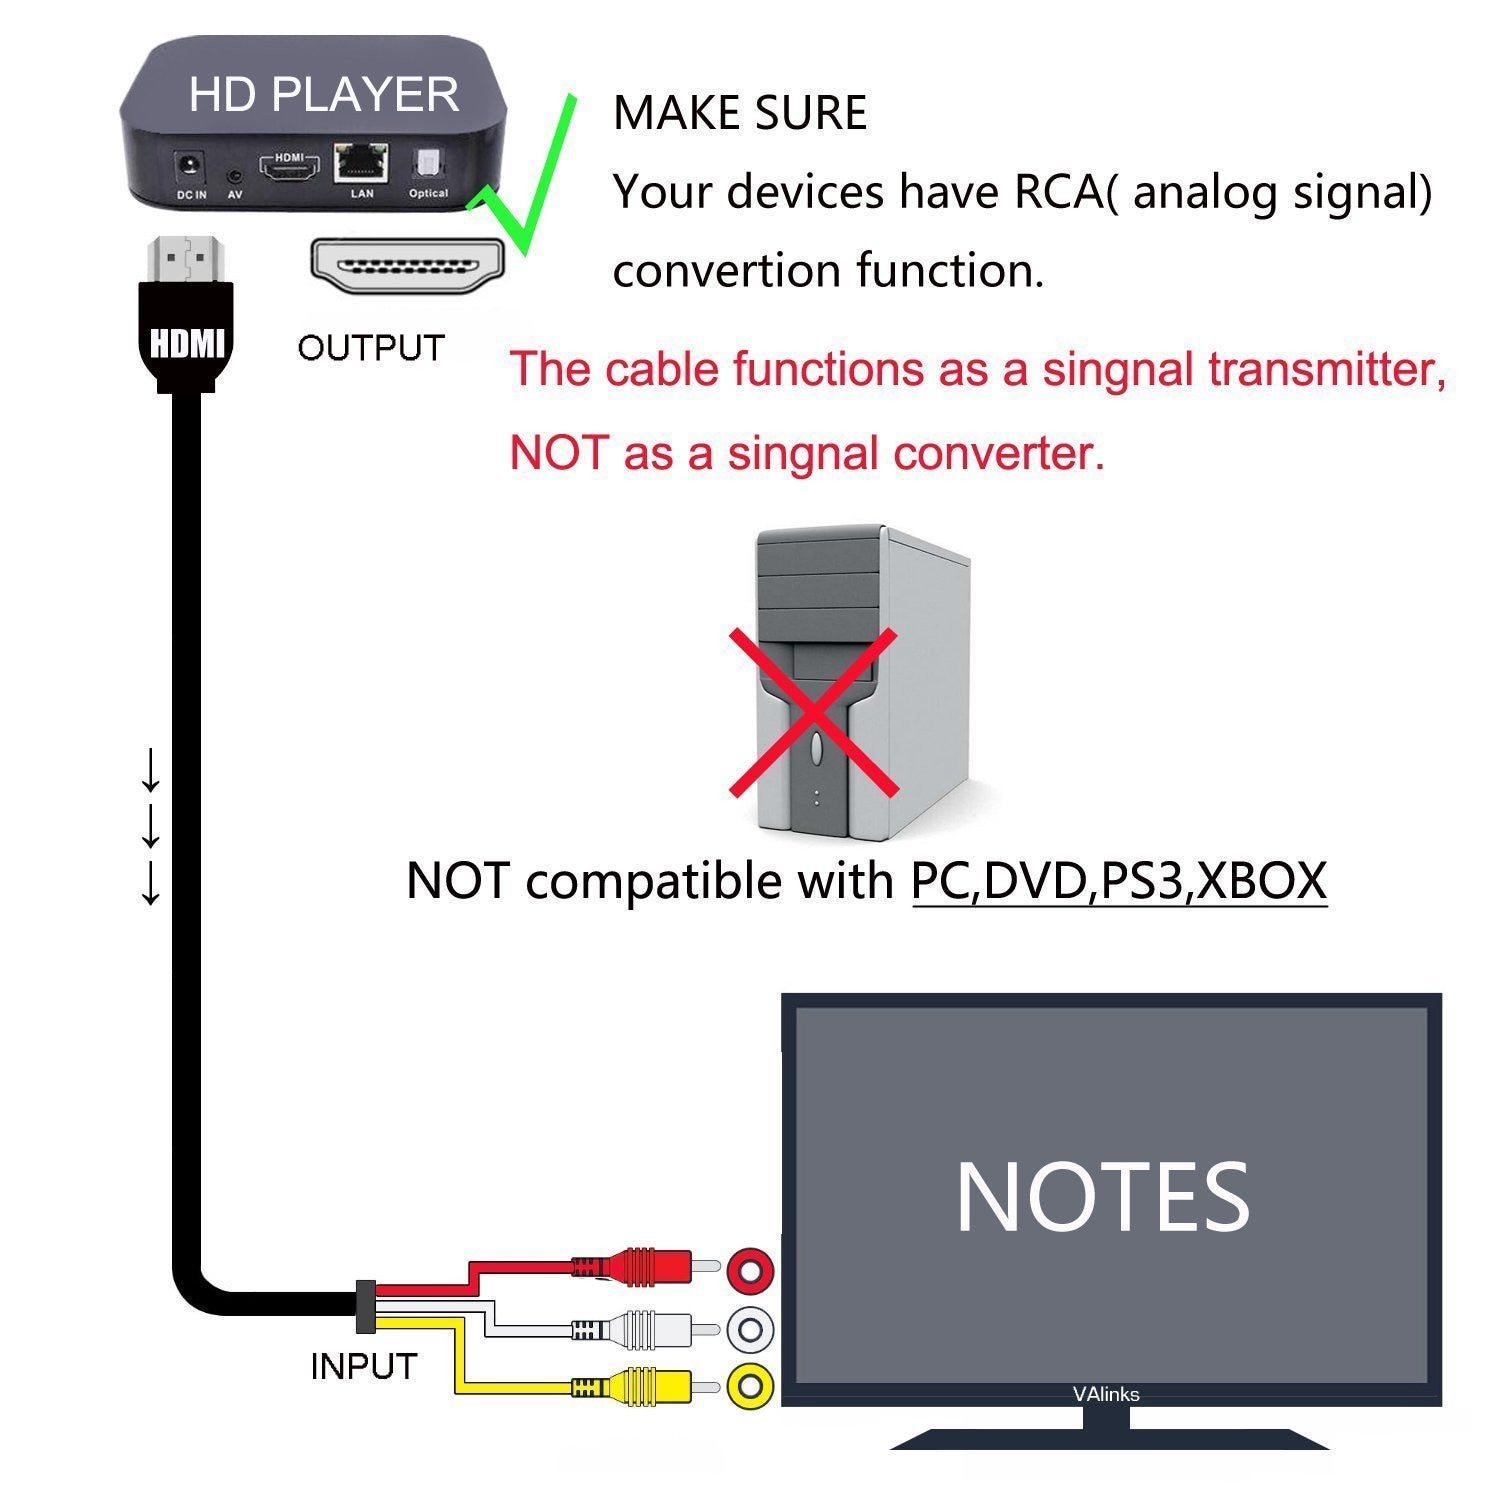 Hdmi To Hd Dvr Connections Diagrams Wiring Diagram Will Be A Thing Xfinity Rca Cable Audio Video Jack Rh Lotmoredeals Com Directv Genie Connection